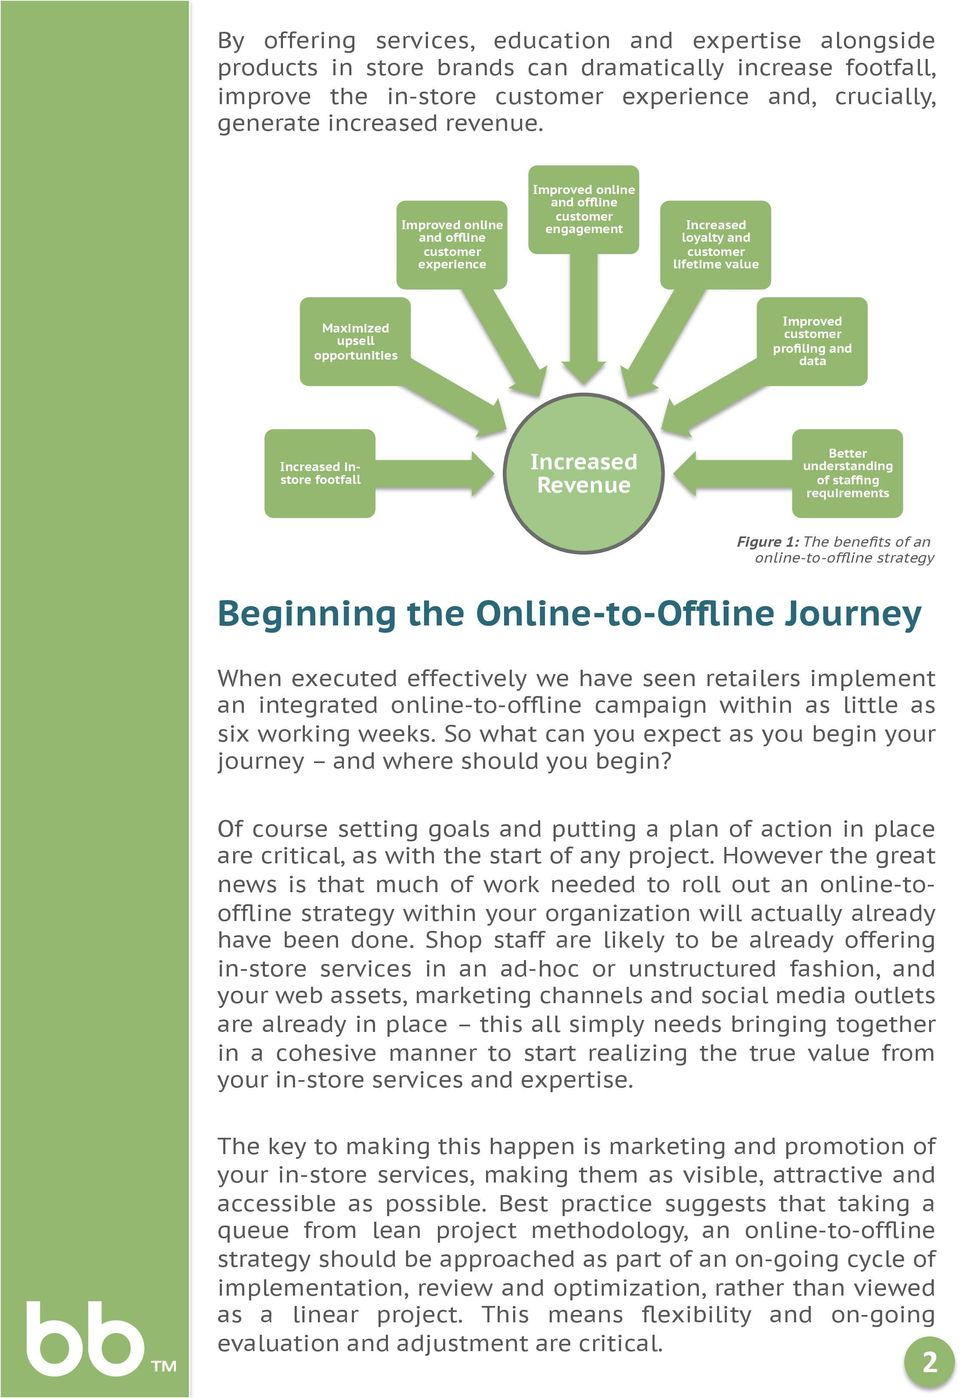 Improved online and offline customer experience Improved online and offline customer engagement Increased loyalty and customer lifetime value Maximized upsell opportunities Improved customer